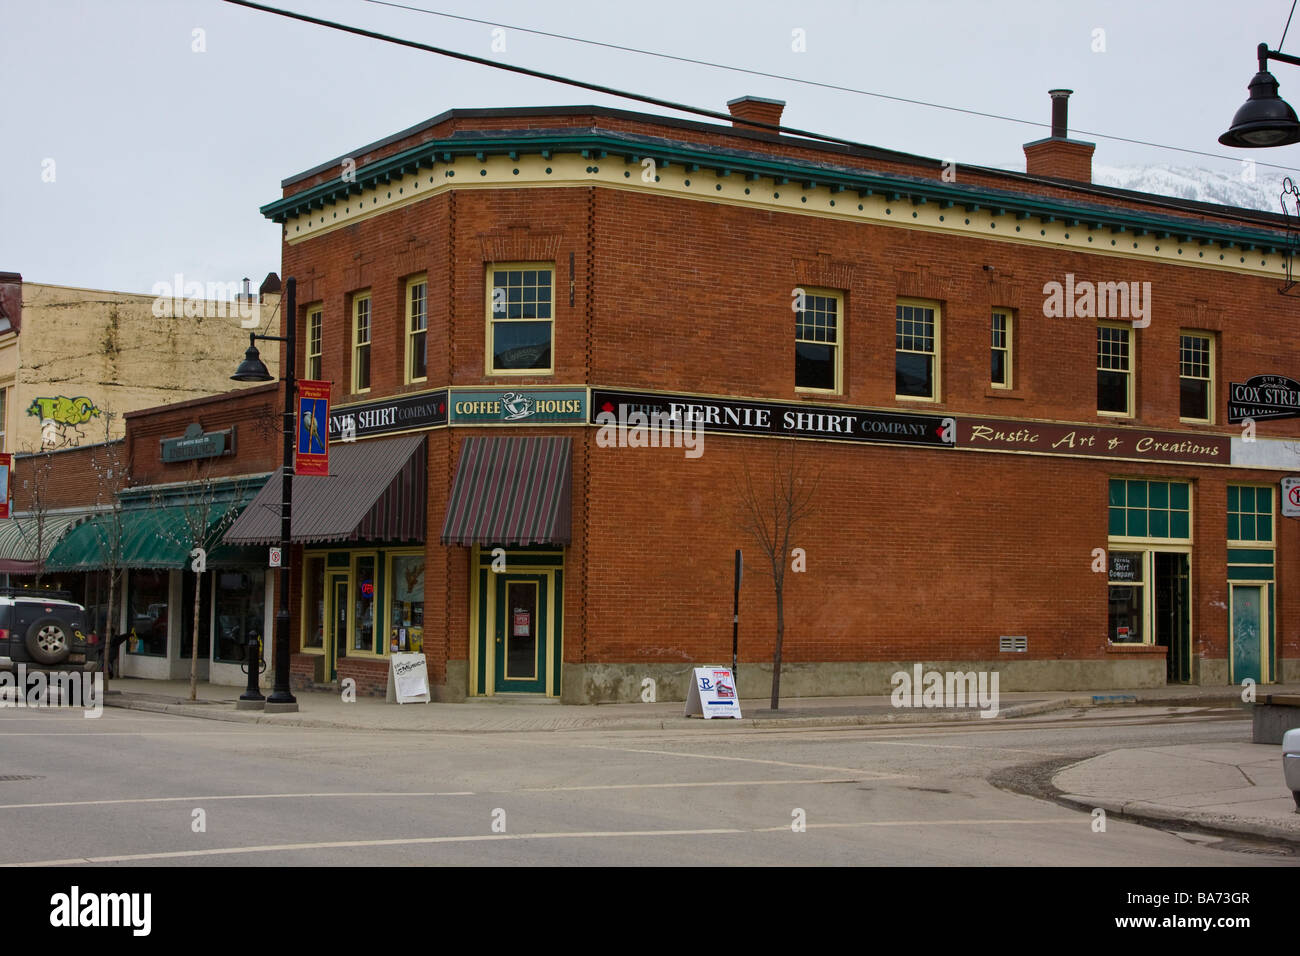 Historic Buildings in Downtown Fernie, British Columbia - Stock Image